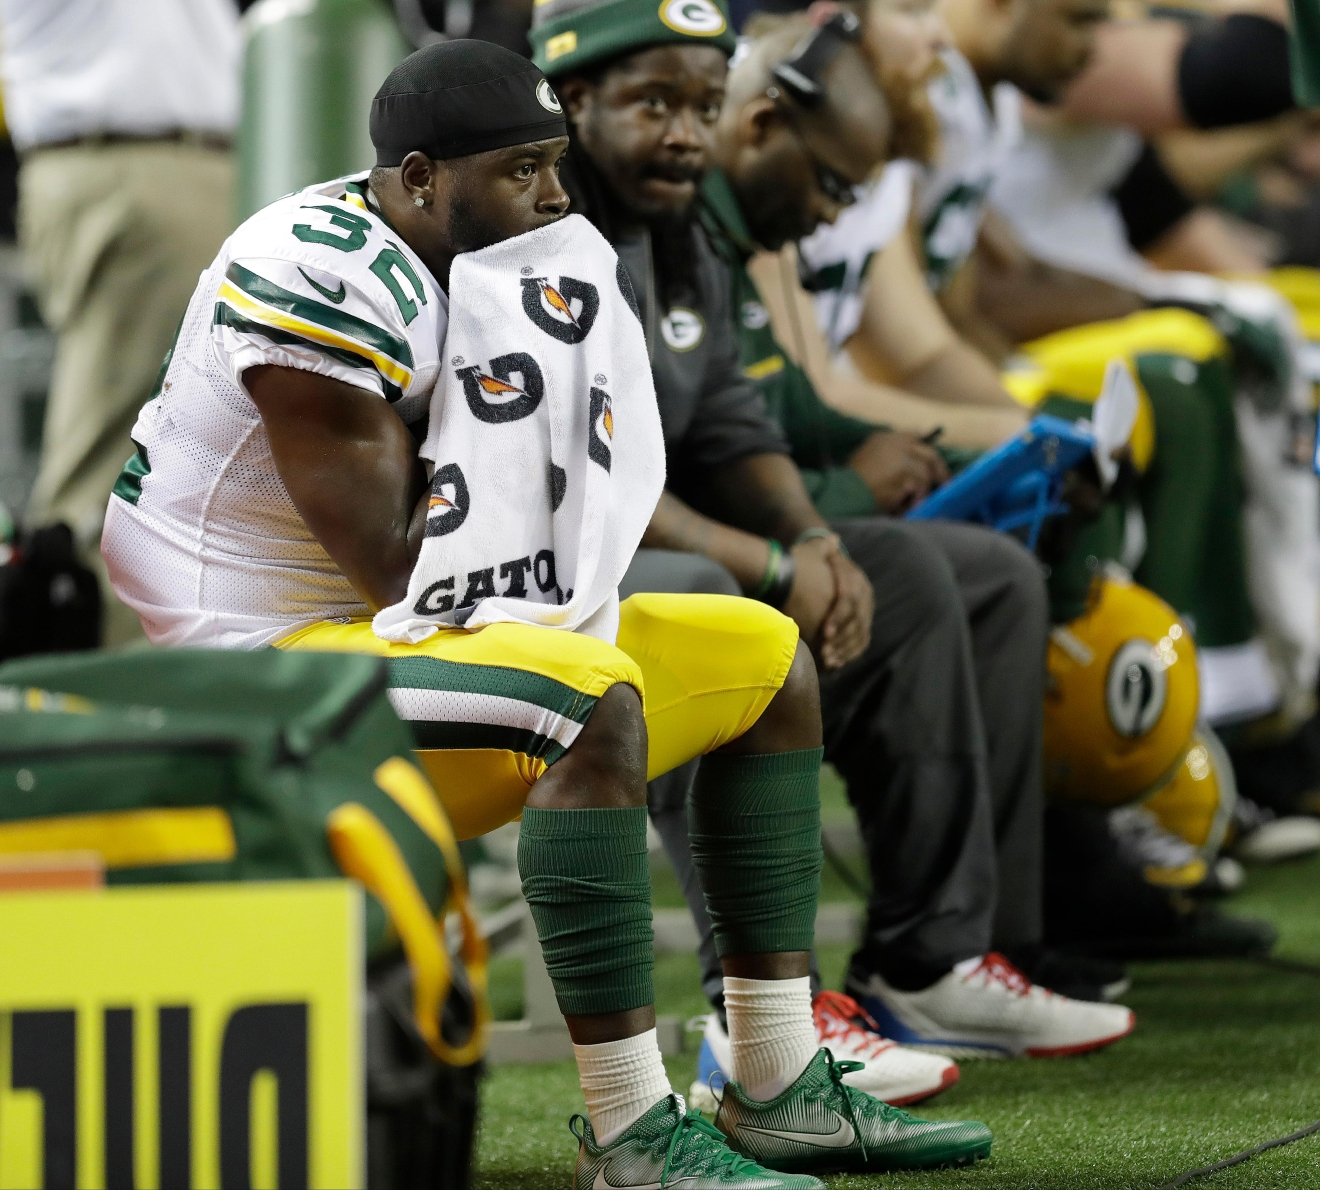 Green Bay Packers' Christine Michael, left, sits on the bench during the second half of the NFC championship game against the Atlanta Falcons, Sunday, Jan. 22, 2017, in Atlanta. (AP Photo/David J. Phillip)